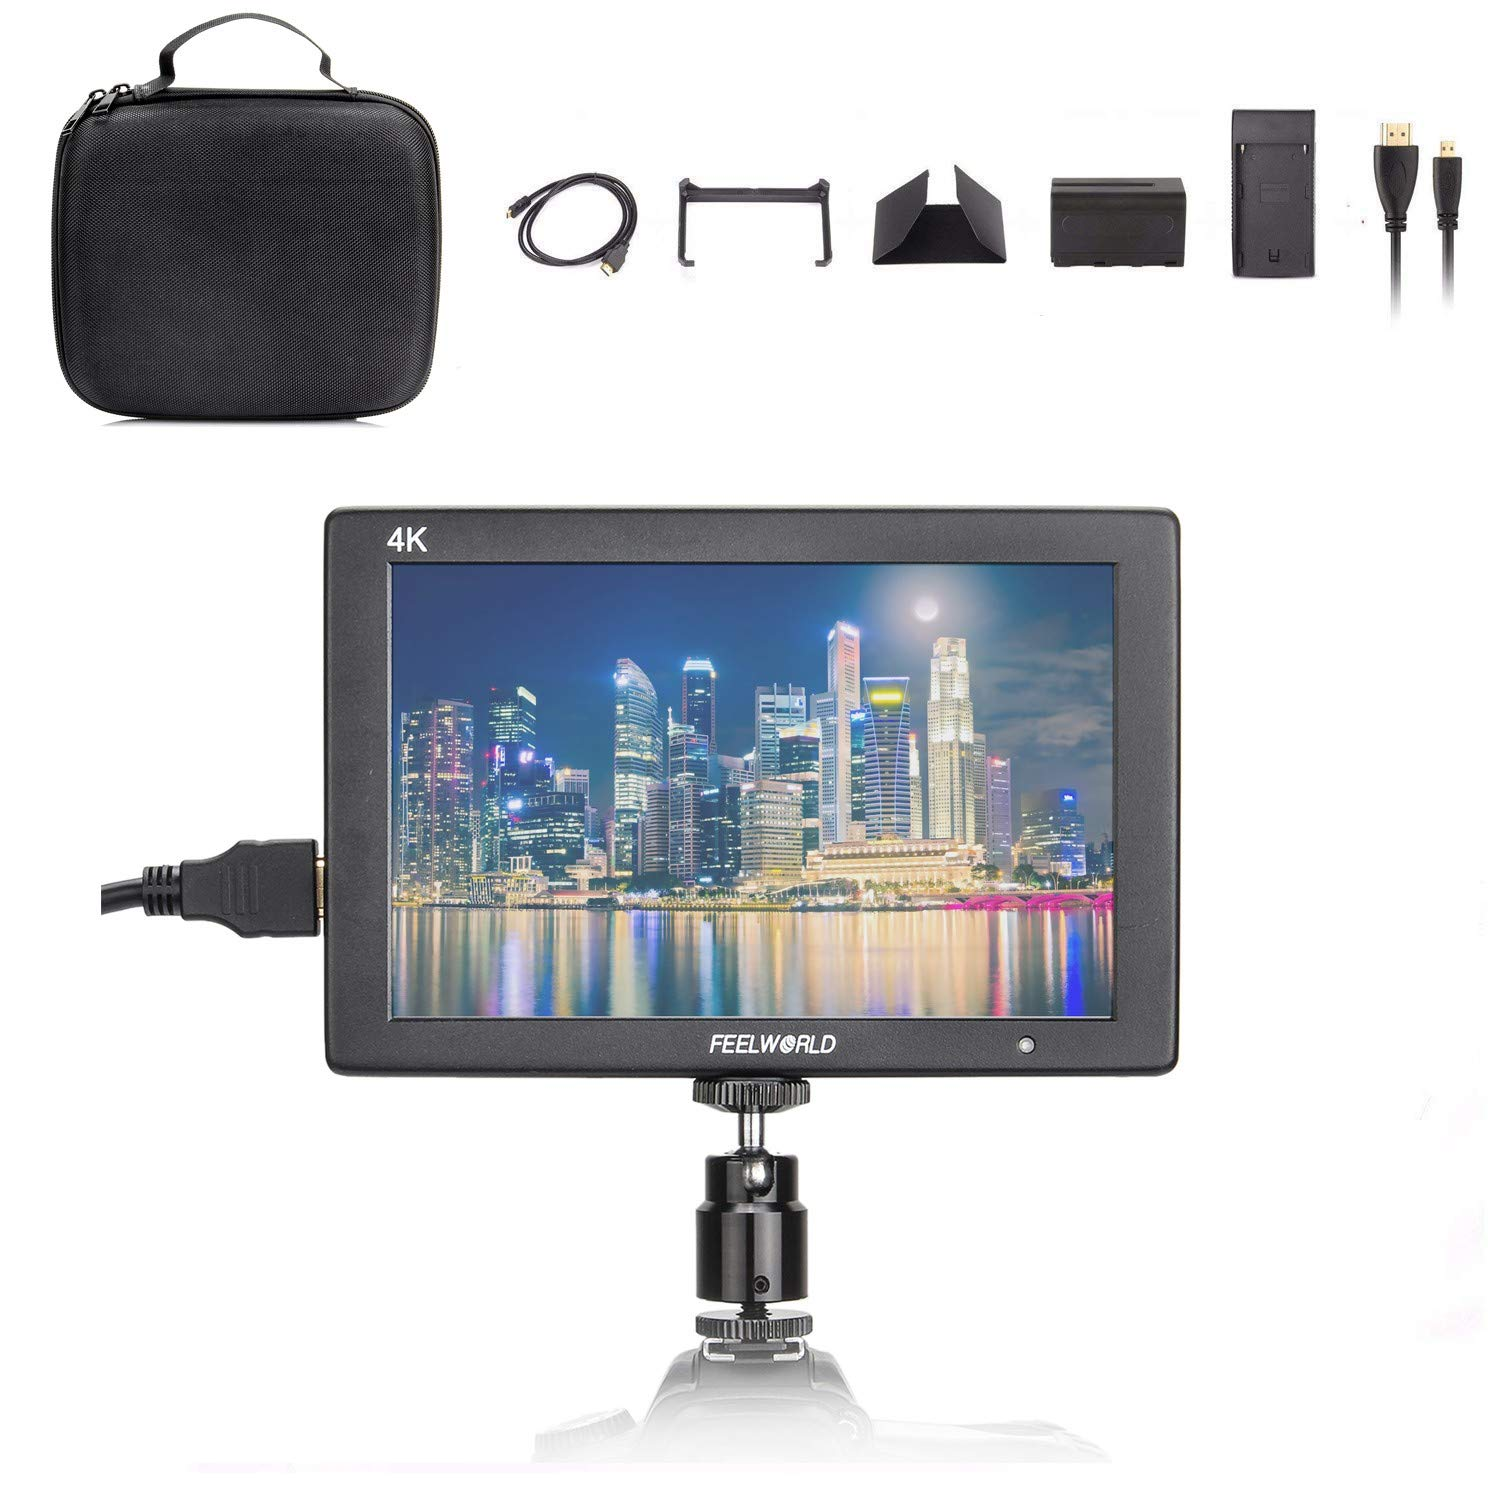 FEELWORLDT7+Case+Battery+Charger, 4K On-Camera MonitorFull HD 1920x1200 Pixels 7'' IPS Screen Video Display,7'' 4K HDMI Aluminum Metal Frame Video Monitorfor Camera/Video w/Mini & Micro HDMI Cable by FEELWORLD